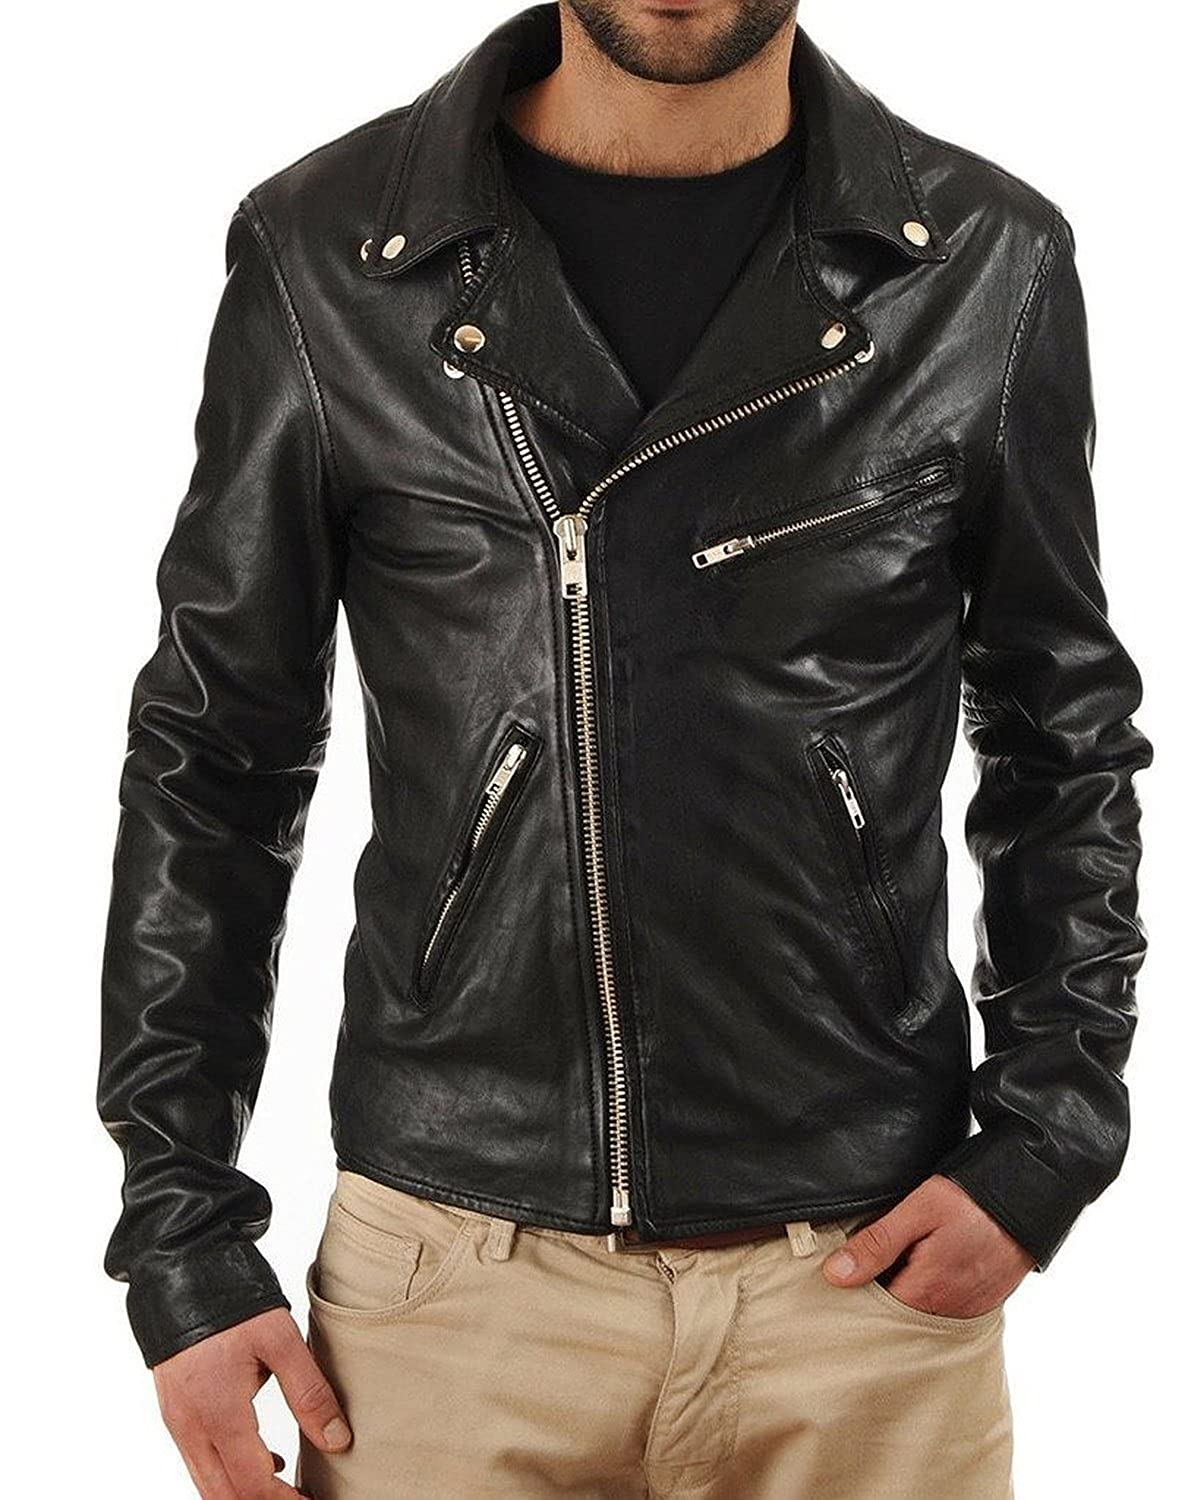 Laverapelle Men's Lambskin Real Leather Jacket Black - 1510325